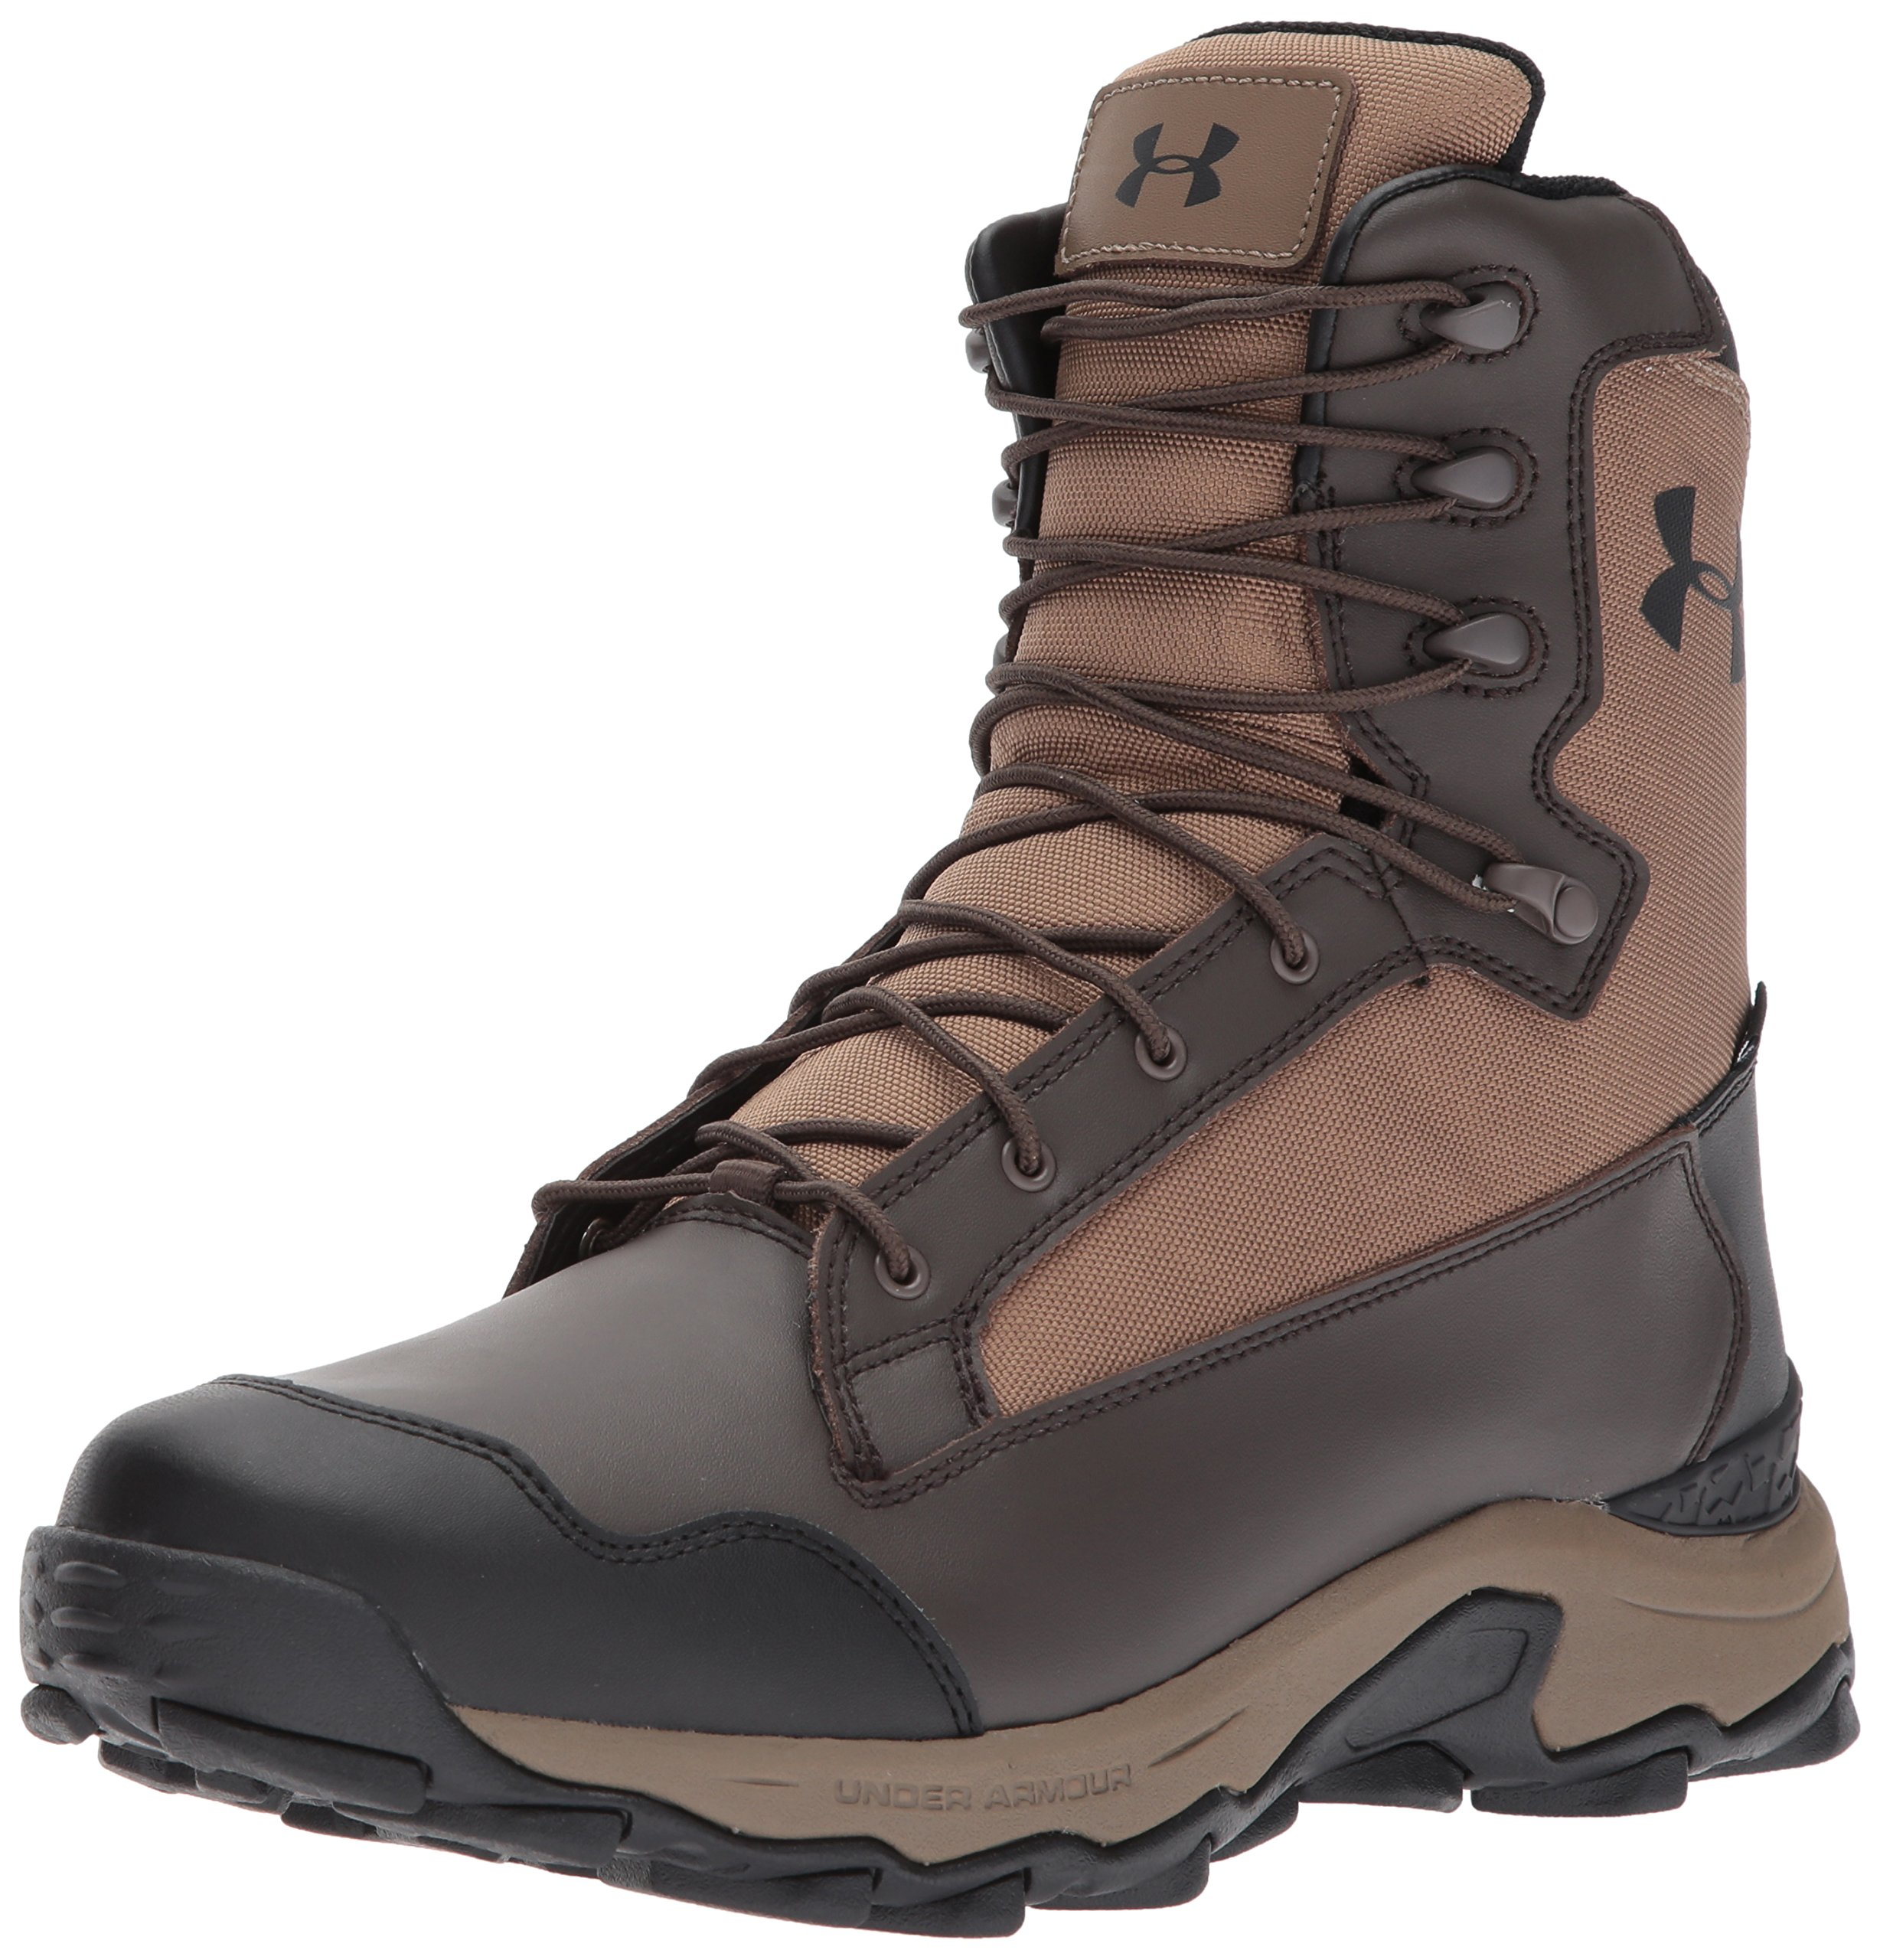 Under Armour Men's Tanger Waterproof-400G Ankle Boot, Uniform (225)/Maverick Brown, 11.5